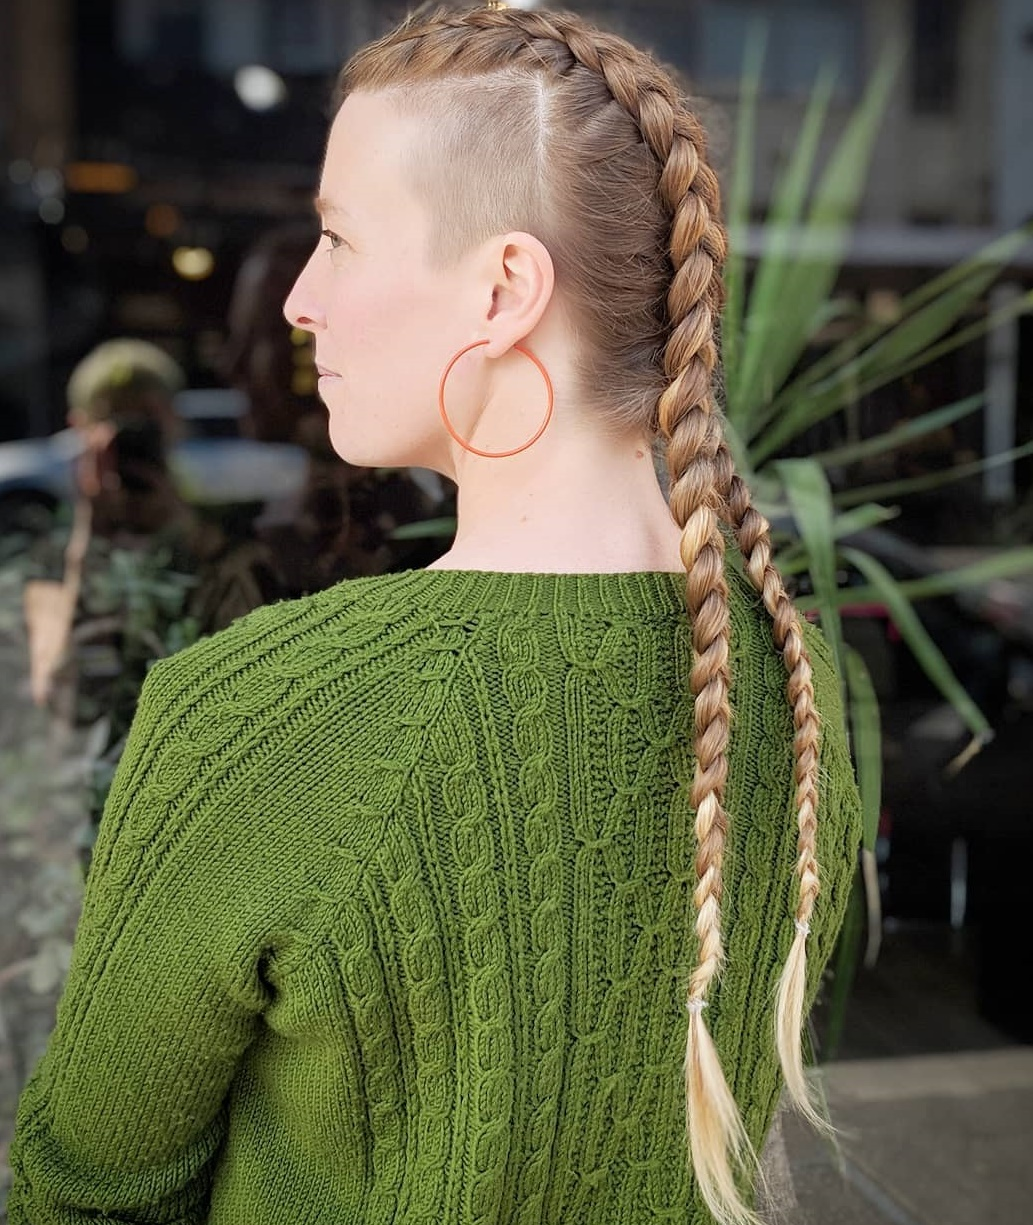 20 Superb Braids with Shaved Sides Worth Copying